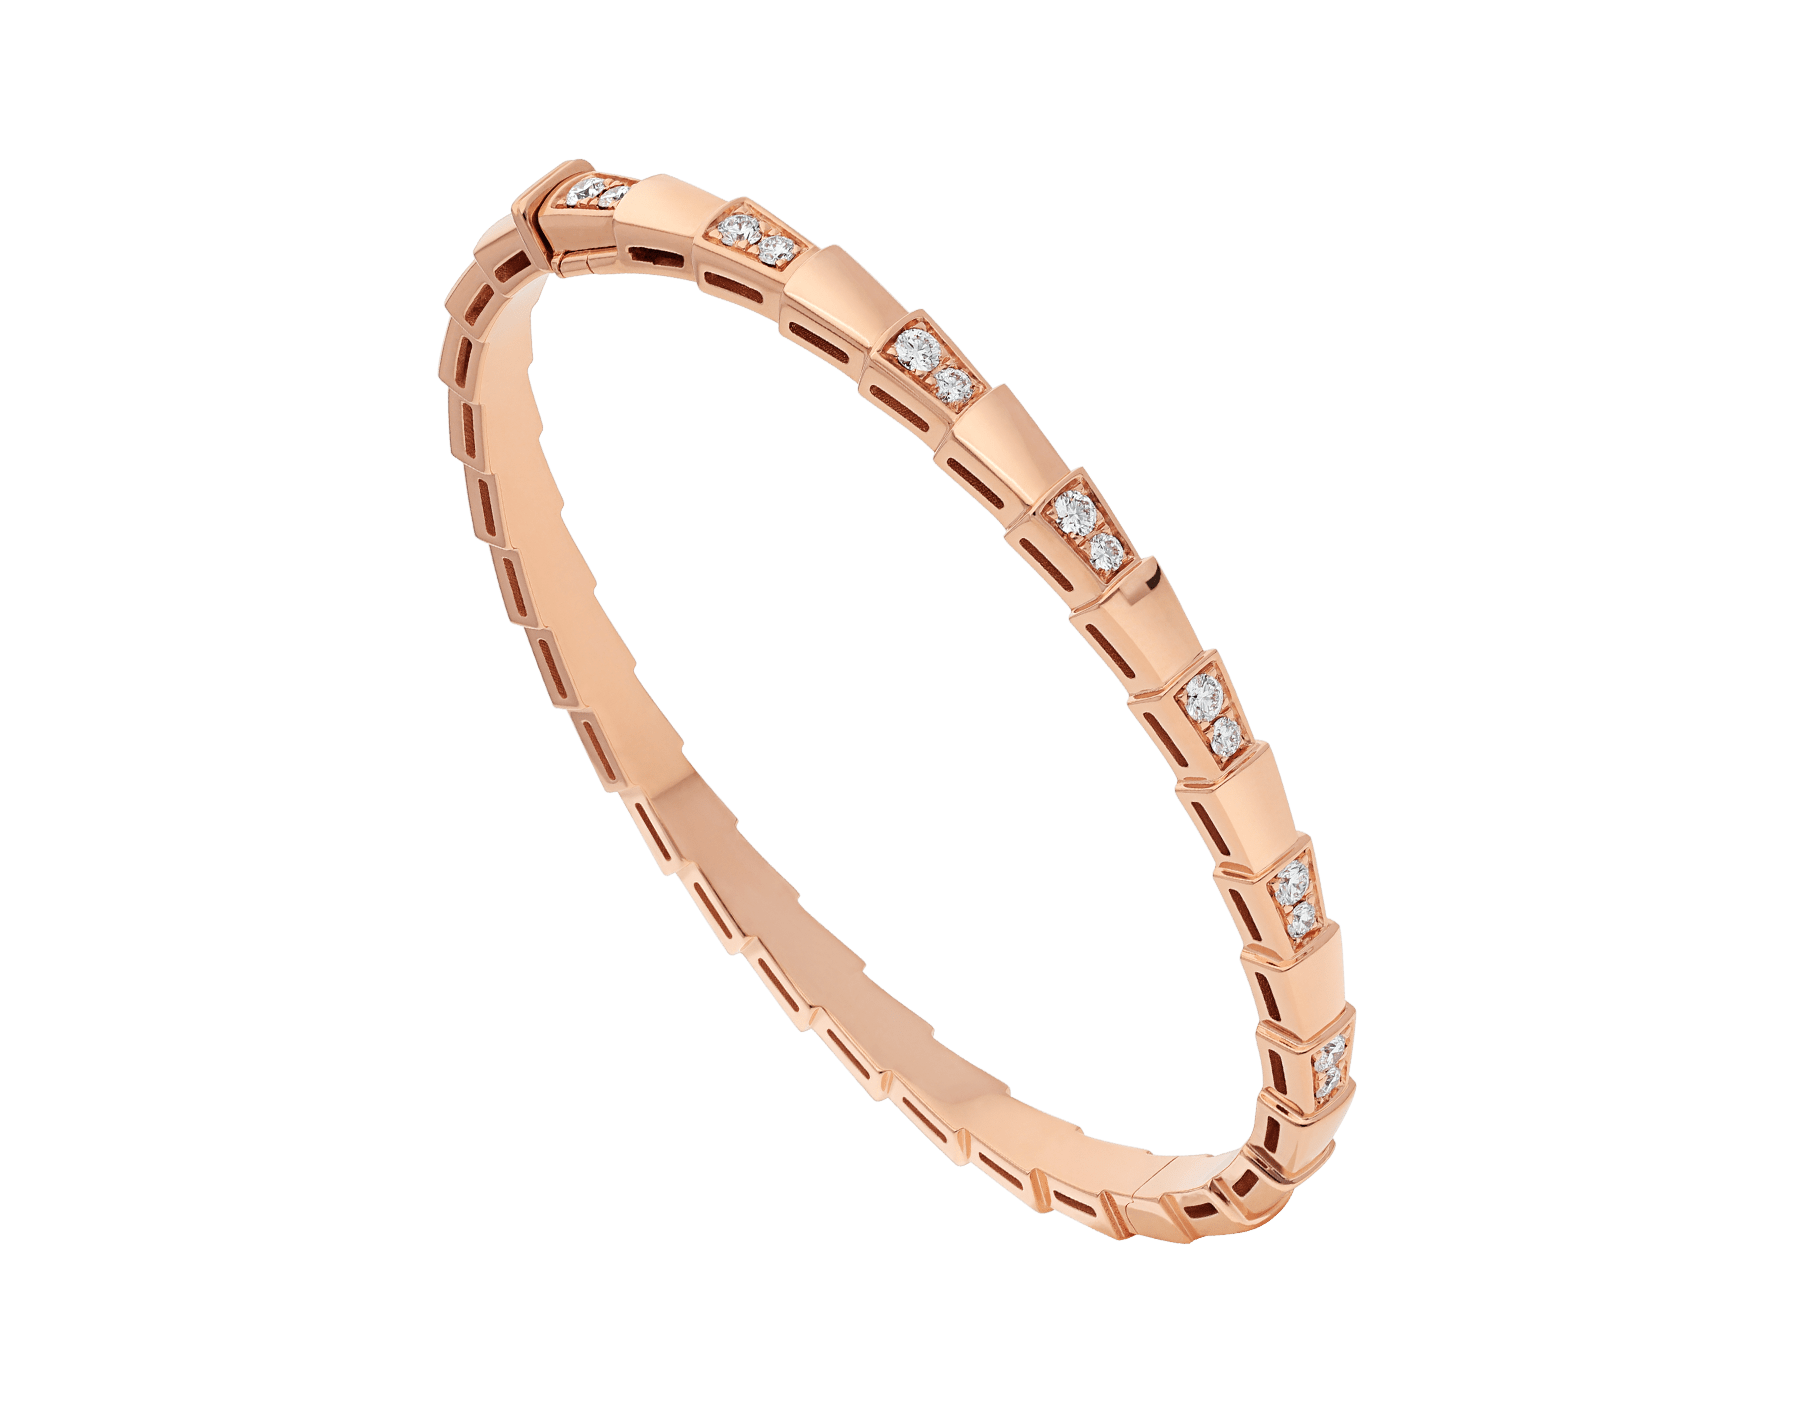 Serpenti Viper 18 kt rose gold bracelet set with demi-pavé diamonds. (width 4 mm) BR858319 image 1